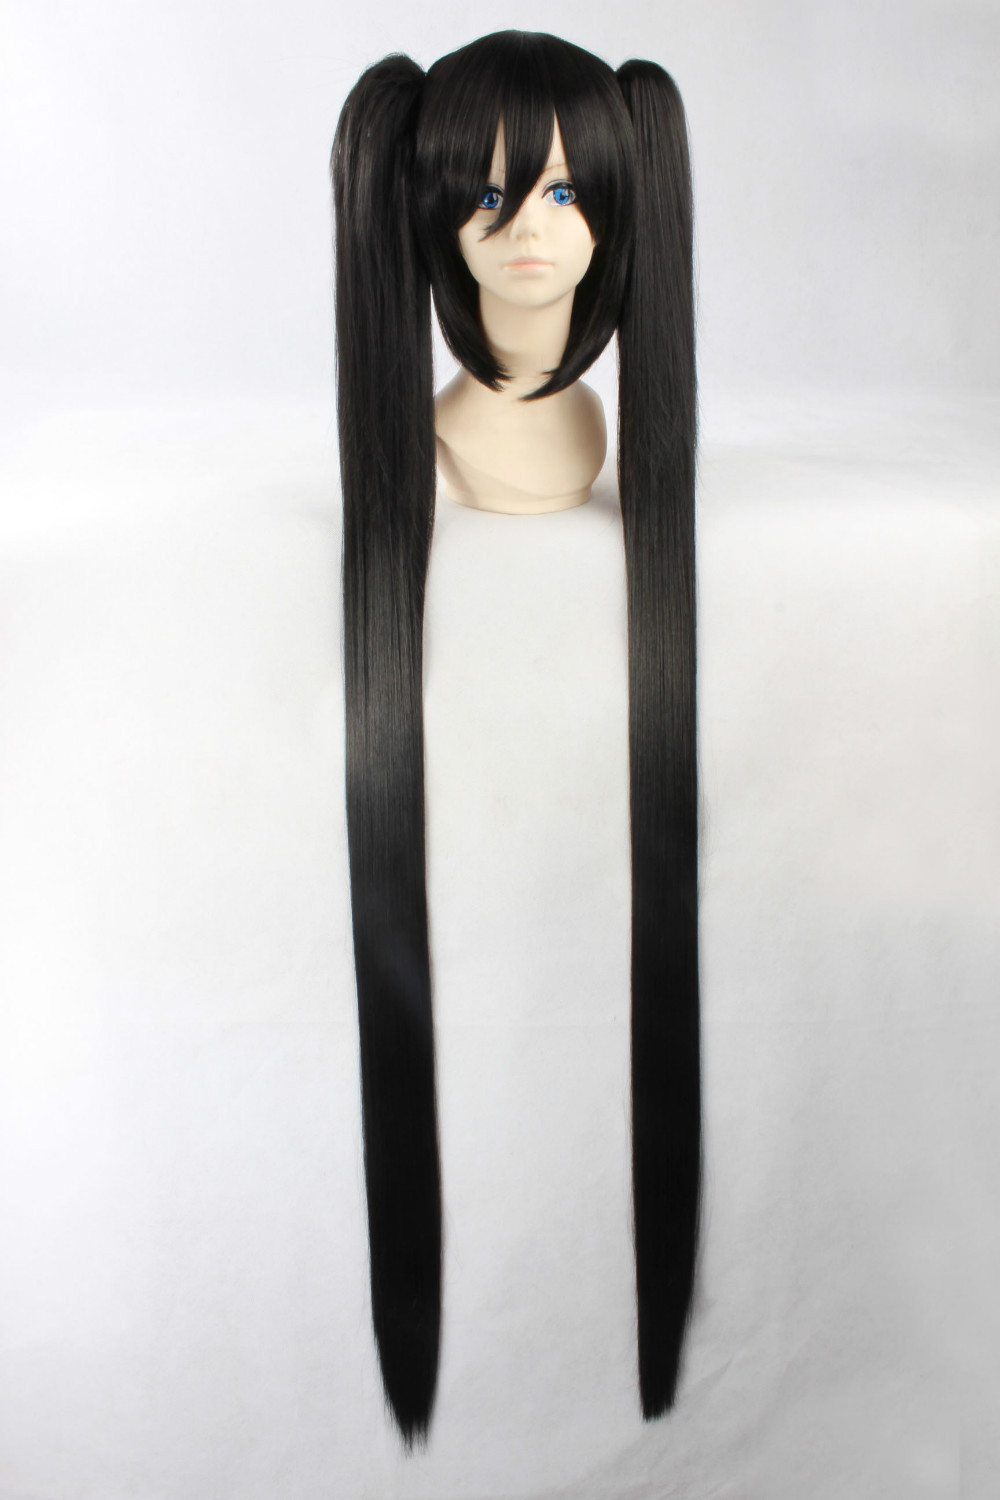 120cm Black Long Straight Heat Resistance Cosplay Costume Wig,Chip on Hair<br><br>Aliexpress